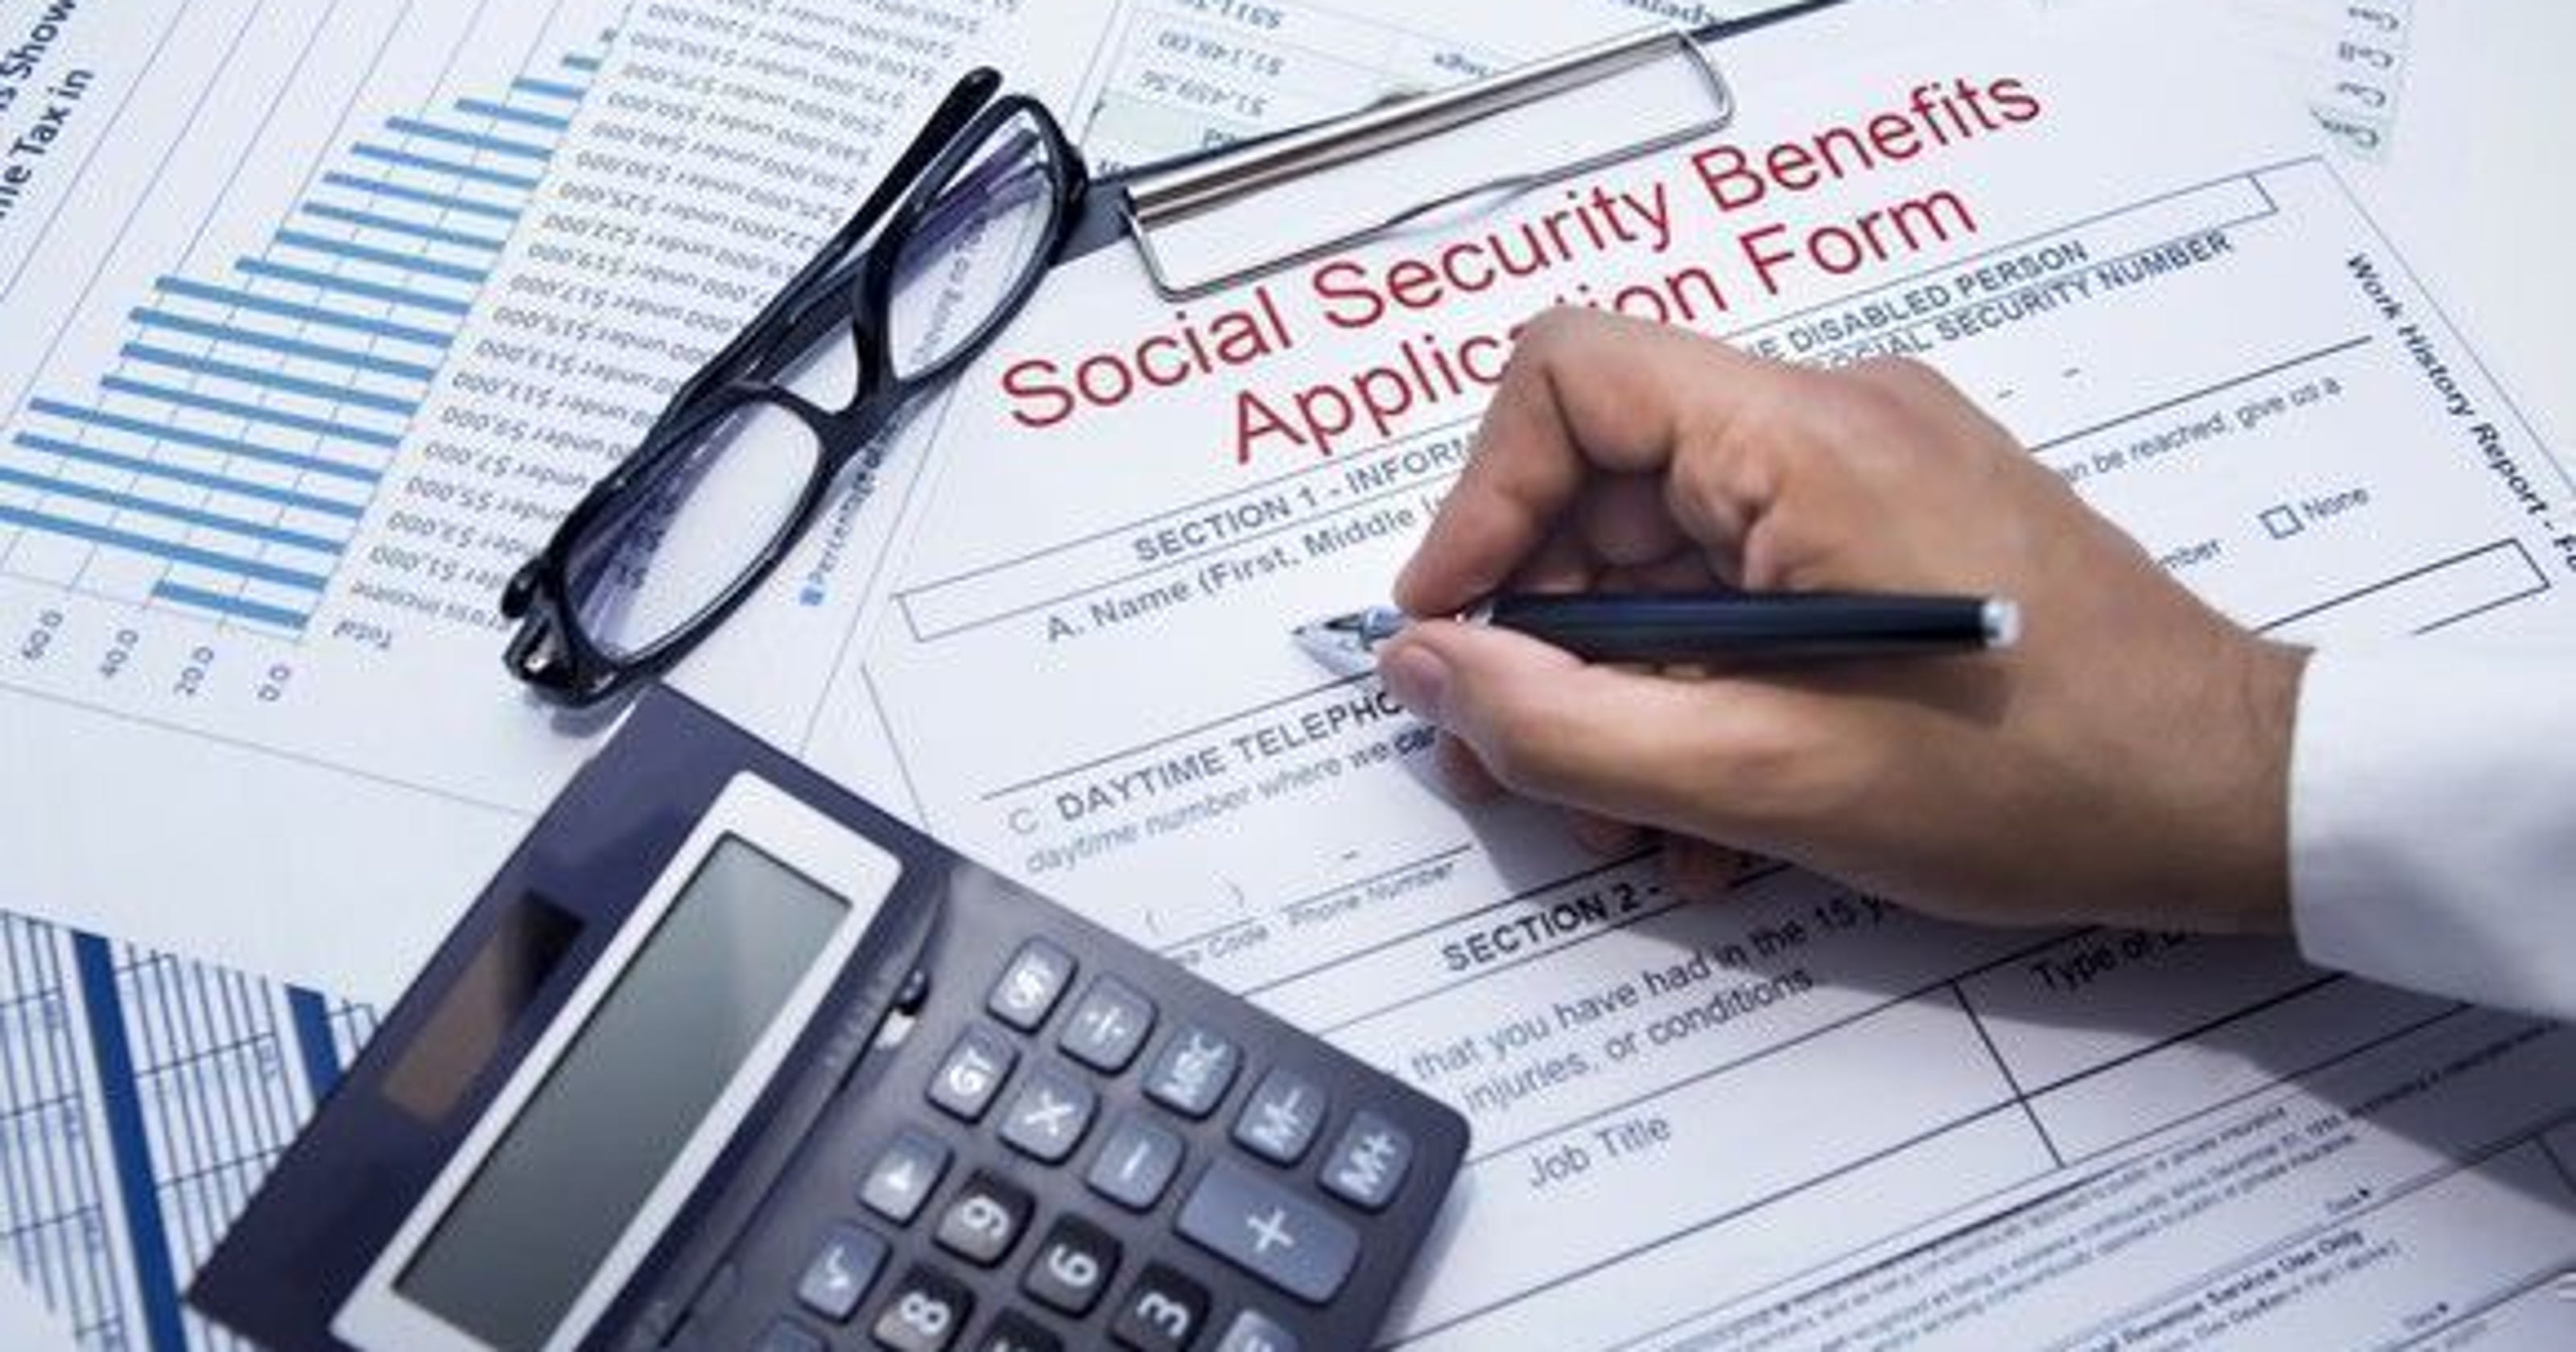 How many years working does it take for max Social Security?